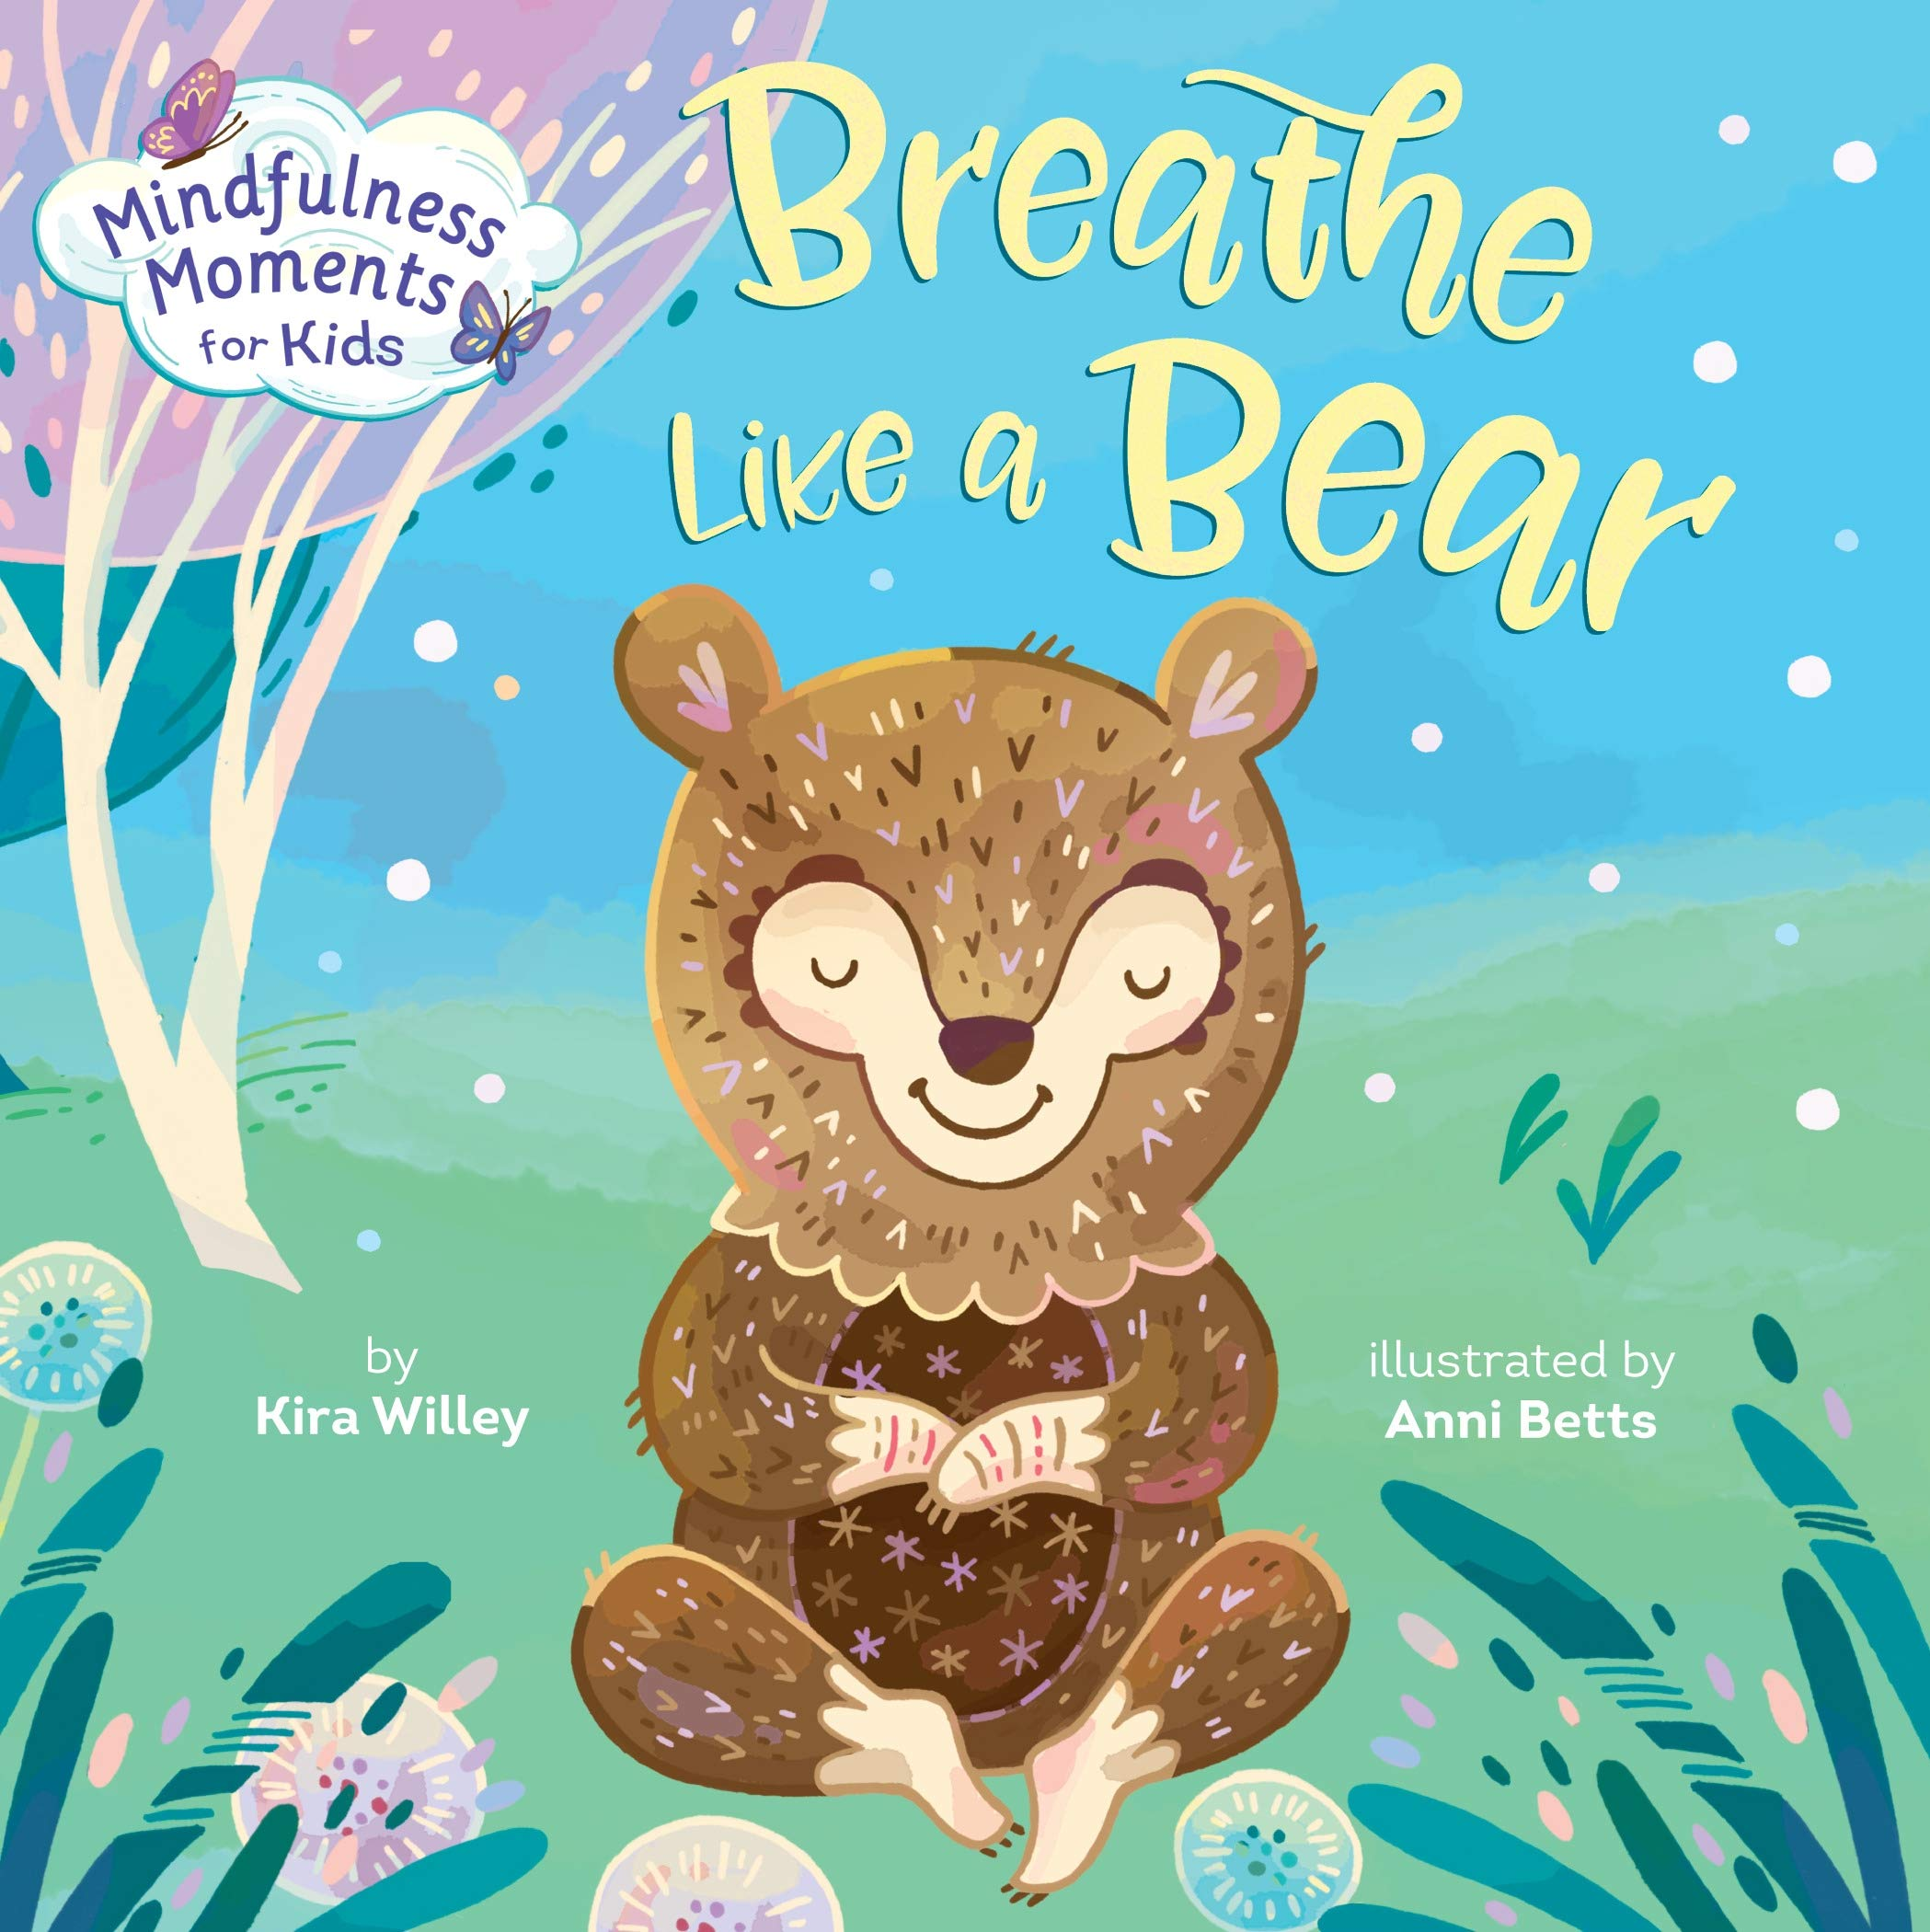 This beautifully illustrated collection of mindfulness exercises is designed to teach kids techniques for managing their bodies, breath, and emotions. Best of all, these thirty simple, short breathing practices and movements can be performed anytime, anywhere: in the car on the way to the grocery store, during heavy homework nights at home, or even at a child's desk at school.